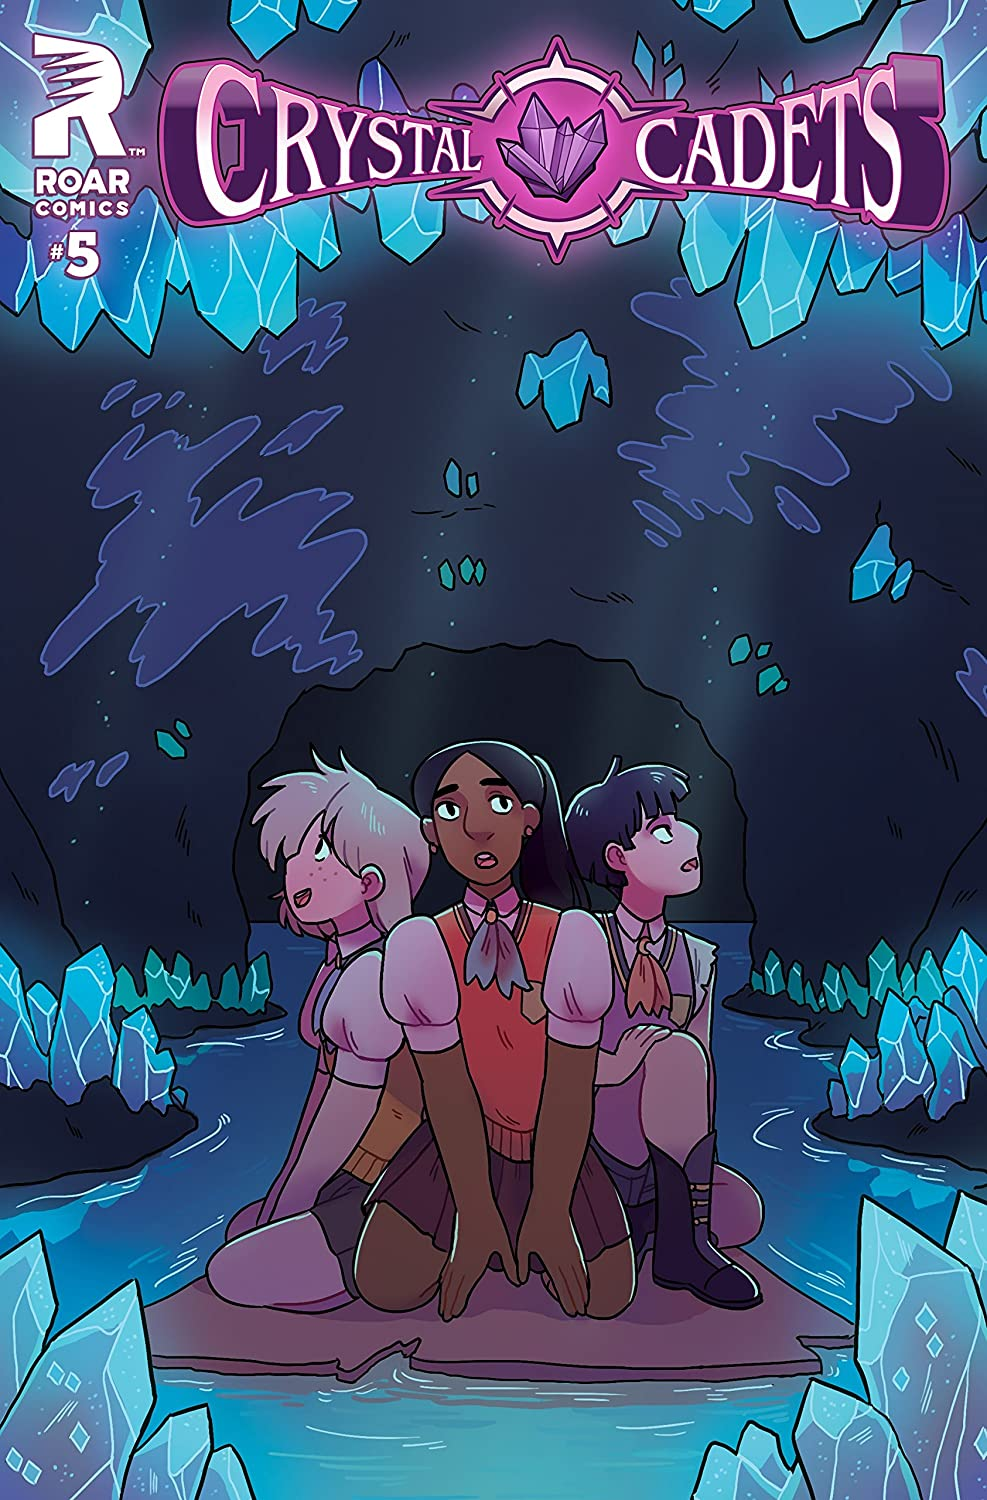 Crystal Cadets, Vol. 5 by Anne Toole